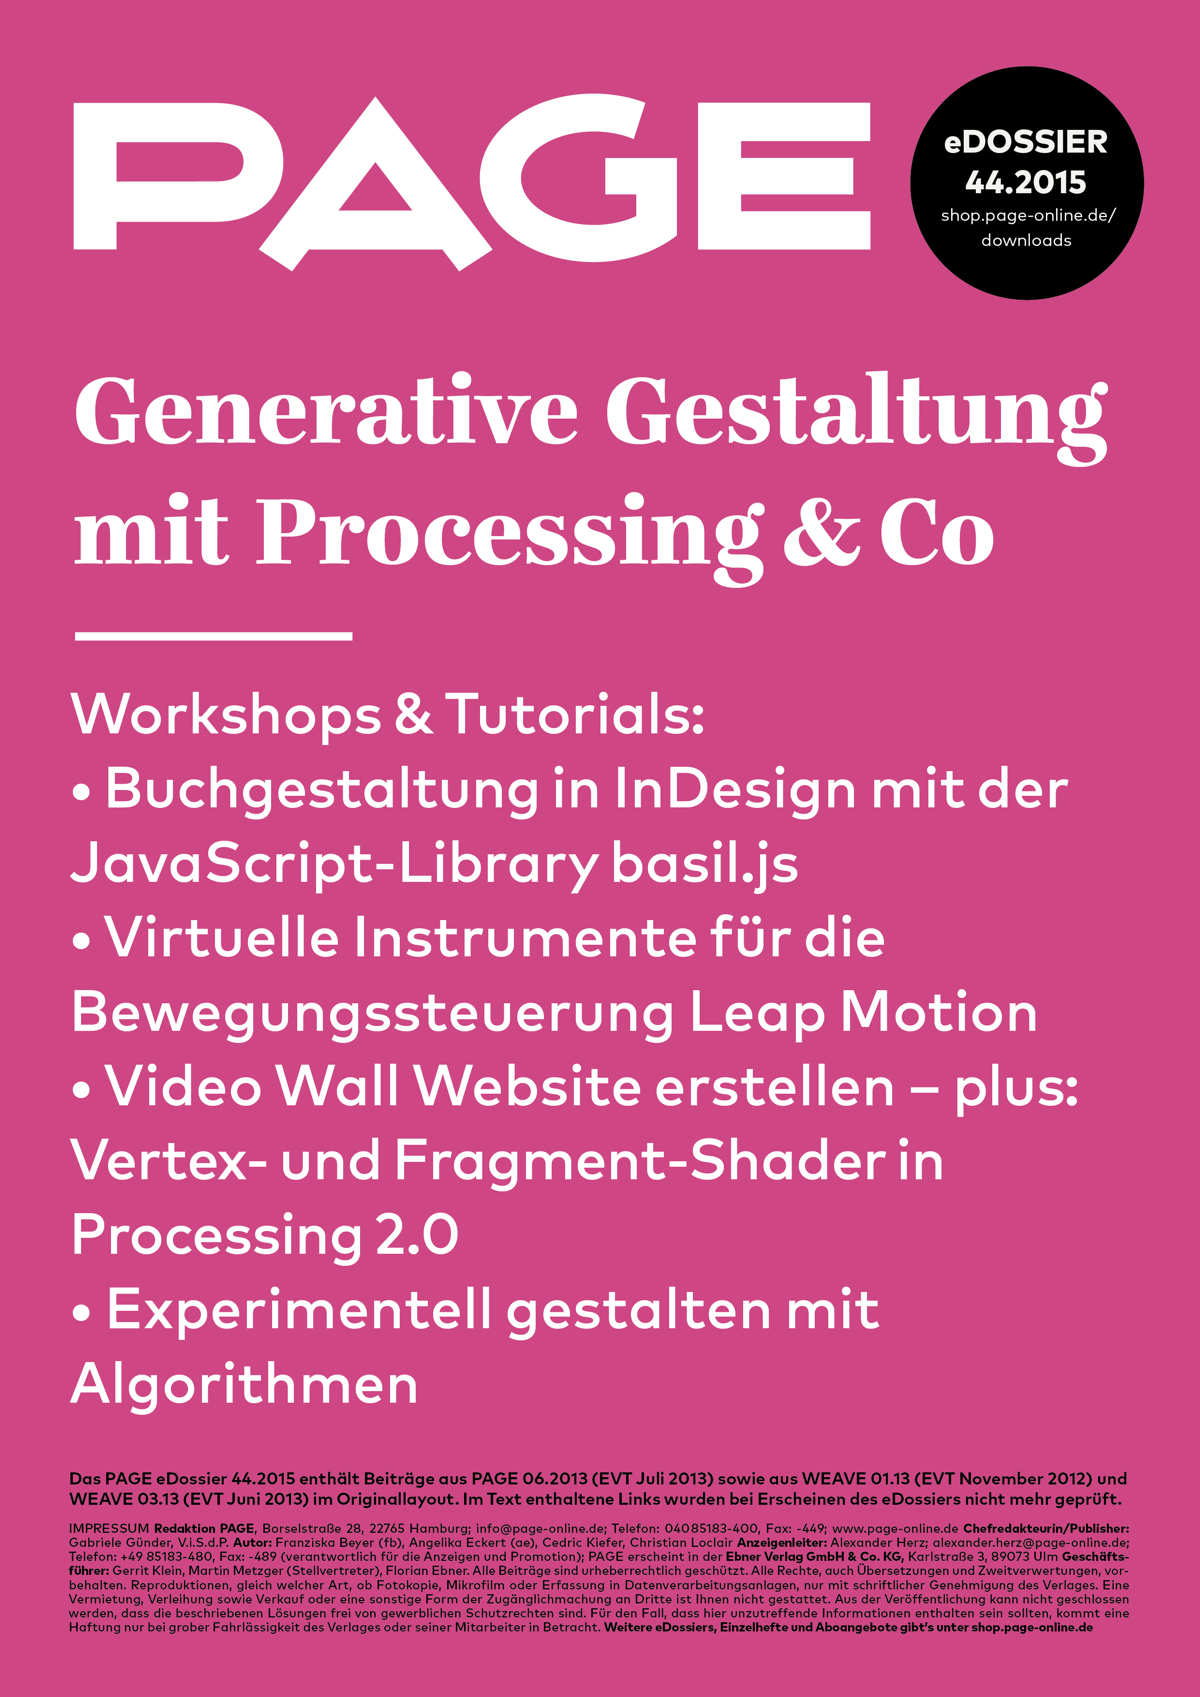 Generative Gestaltung, Processing, Datenvisualisierung, Interaction Design, Digital Design